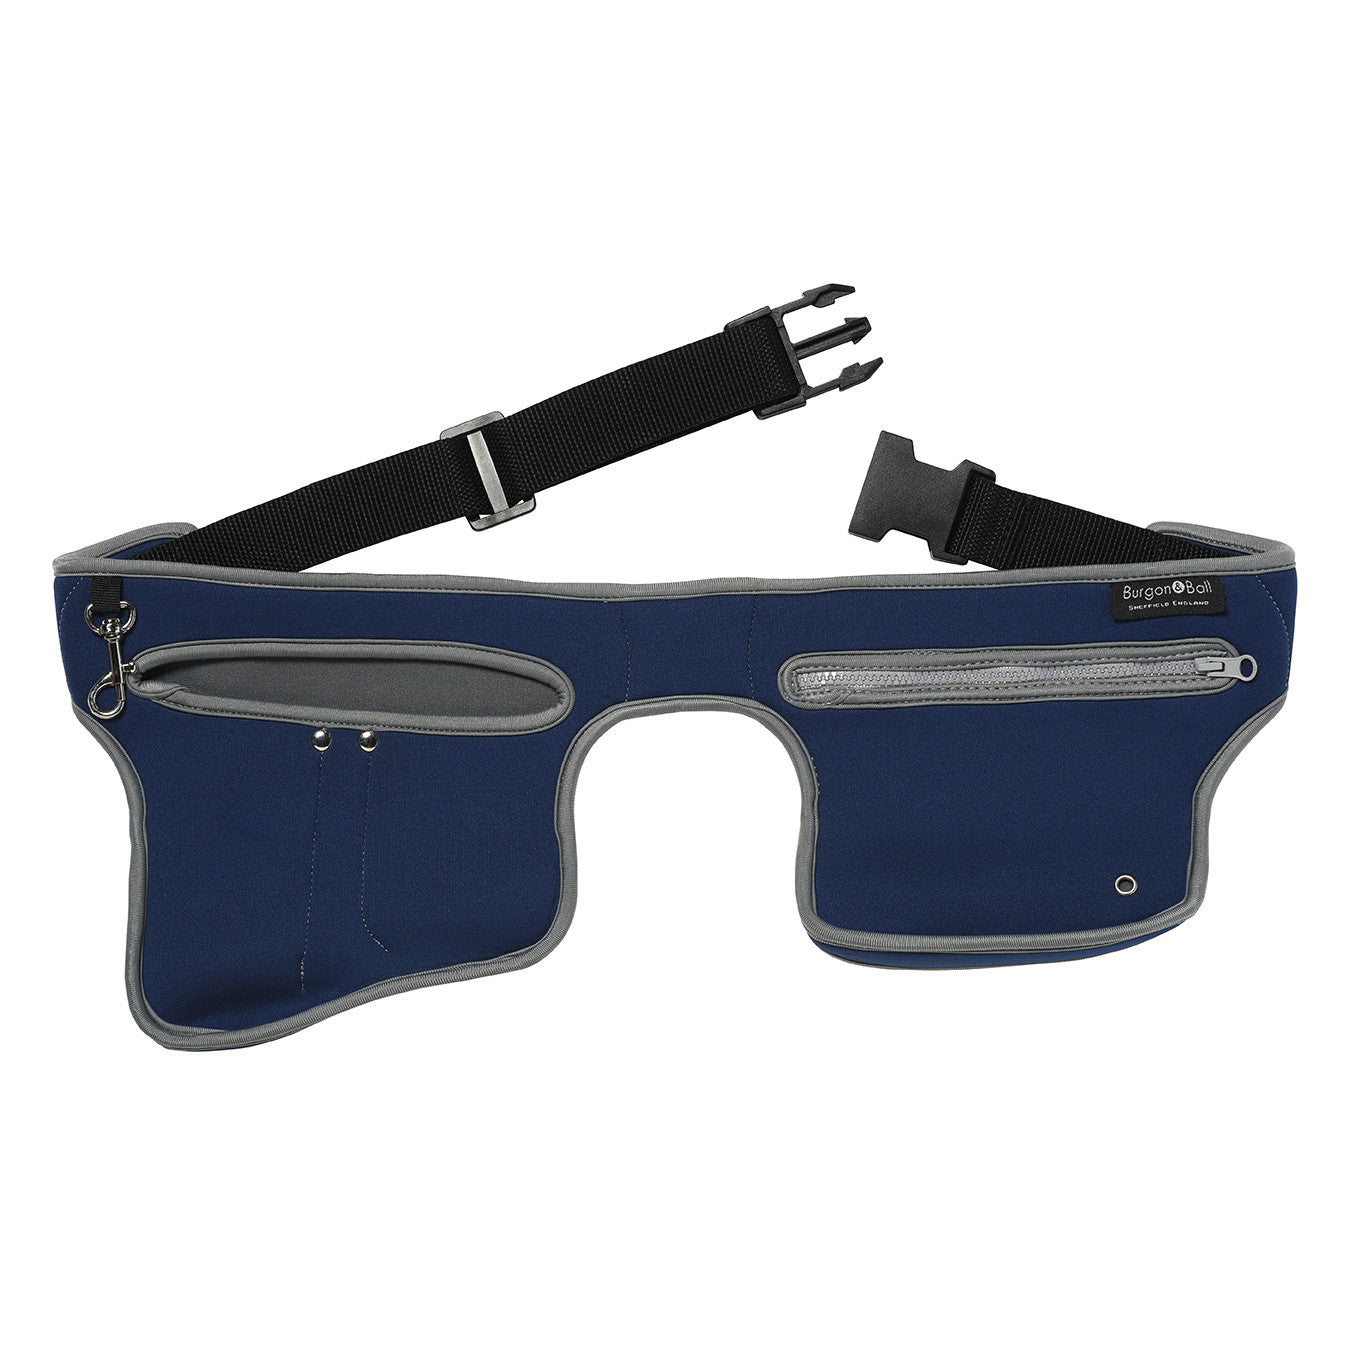 Poc-Kit Gardener's Utility Belt - Navy